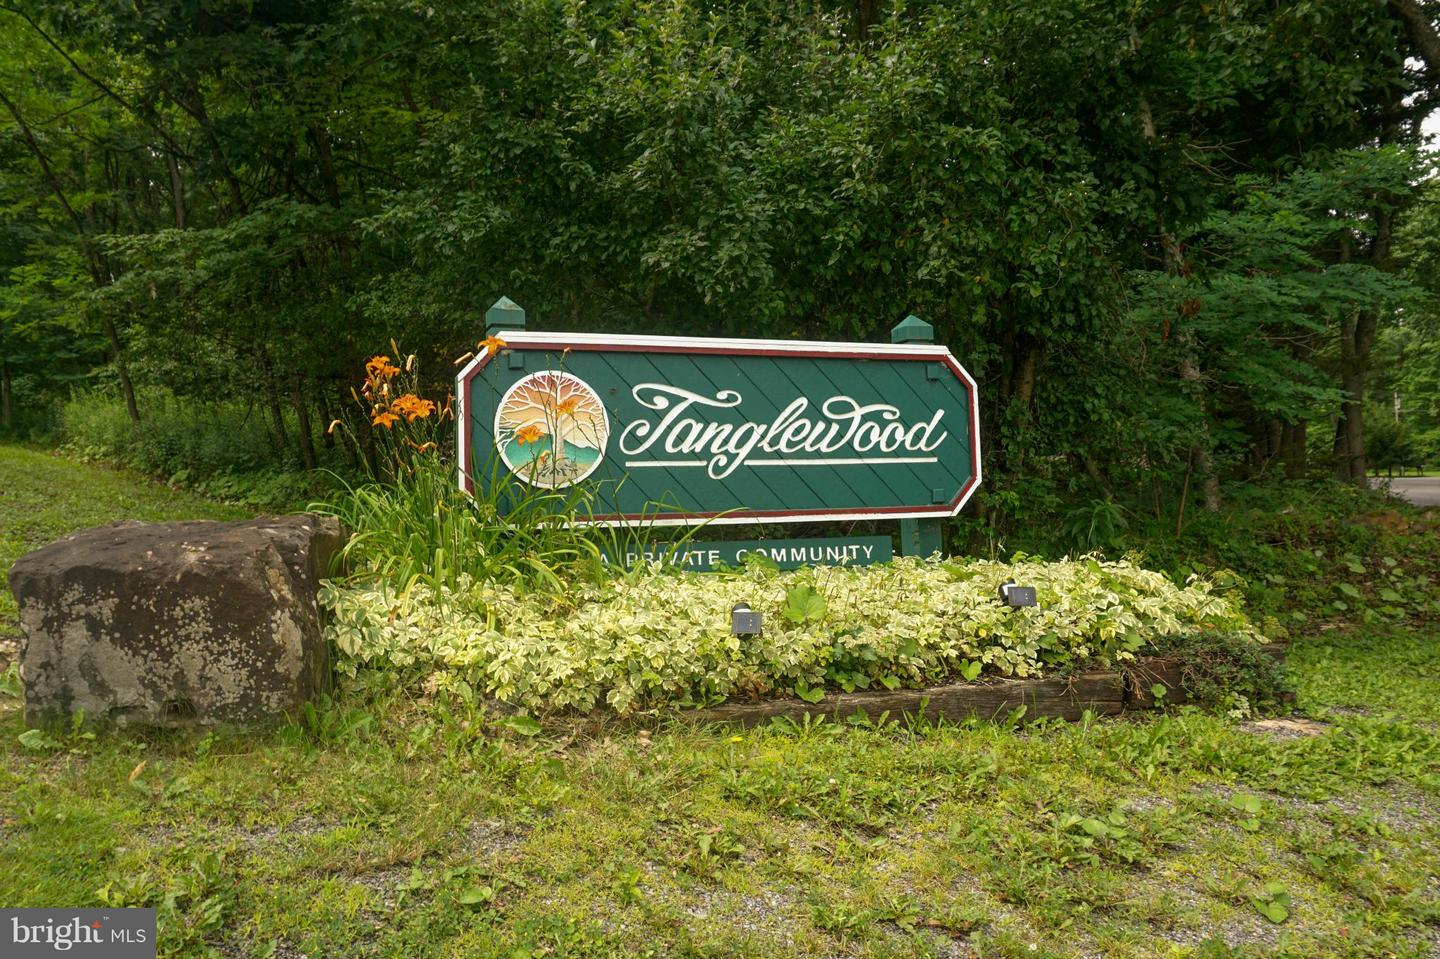 Land for Sale at 4 Tanglewood Dr Oakland, Maryland 21550 United States